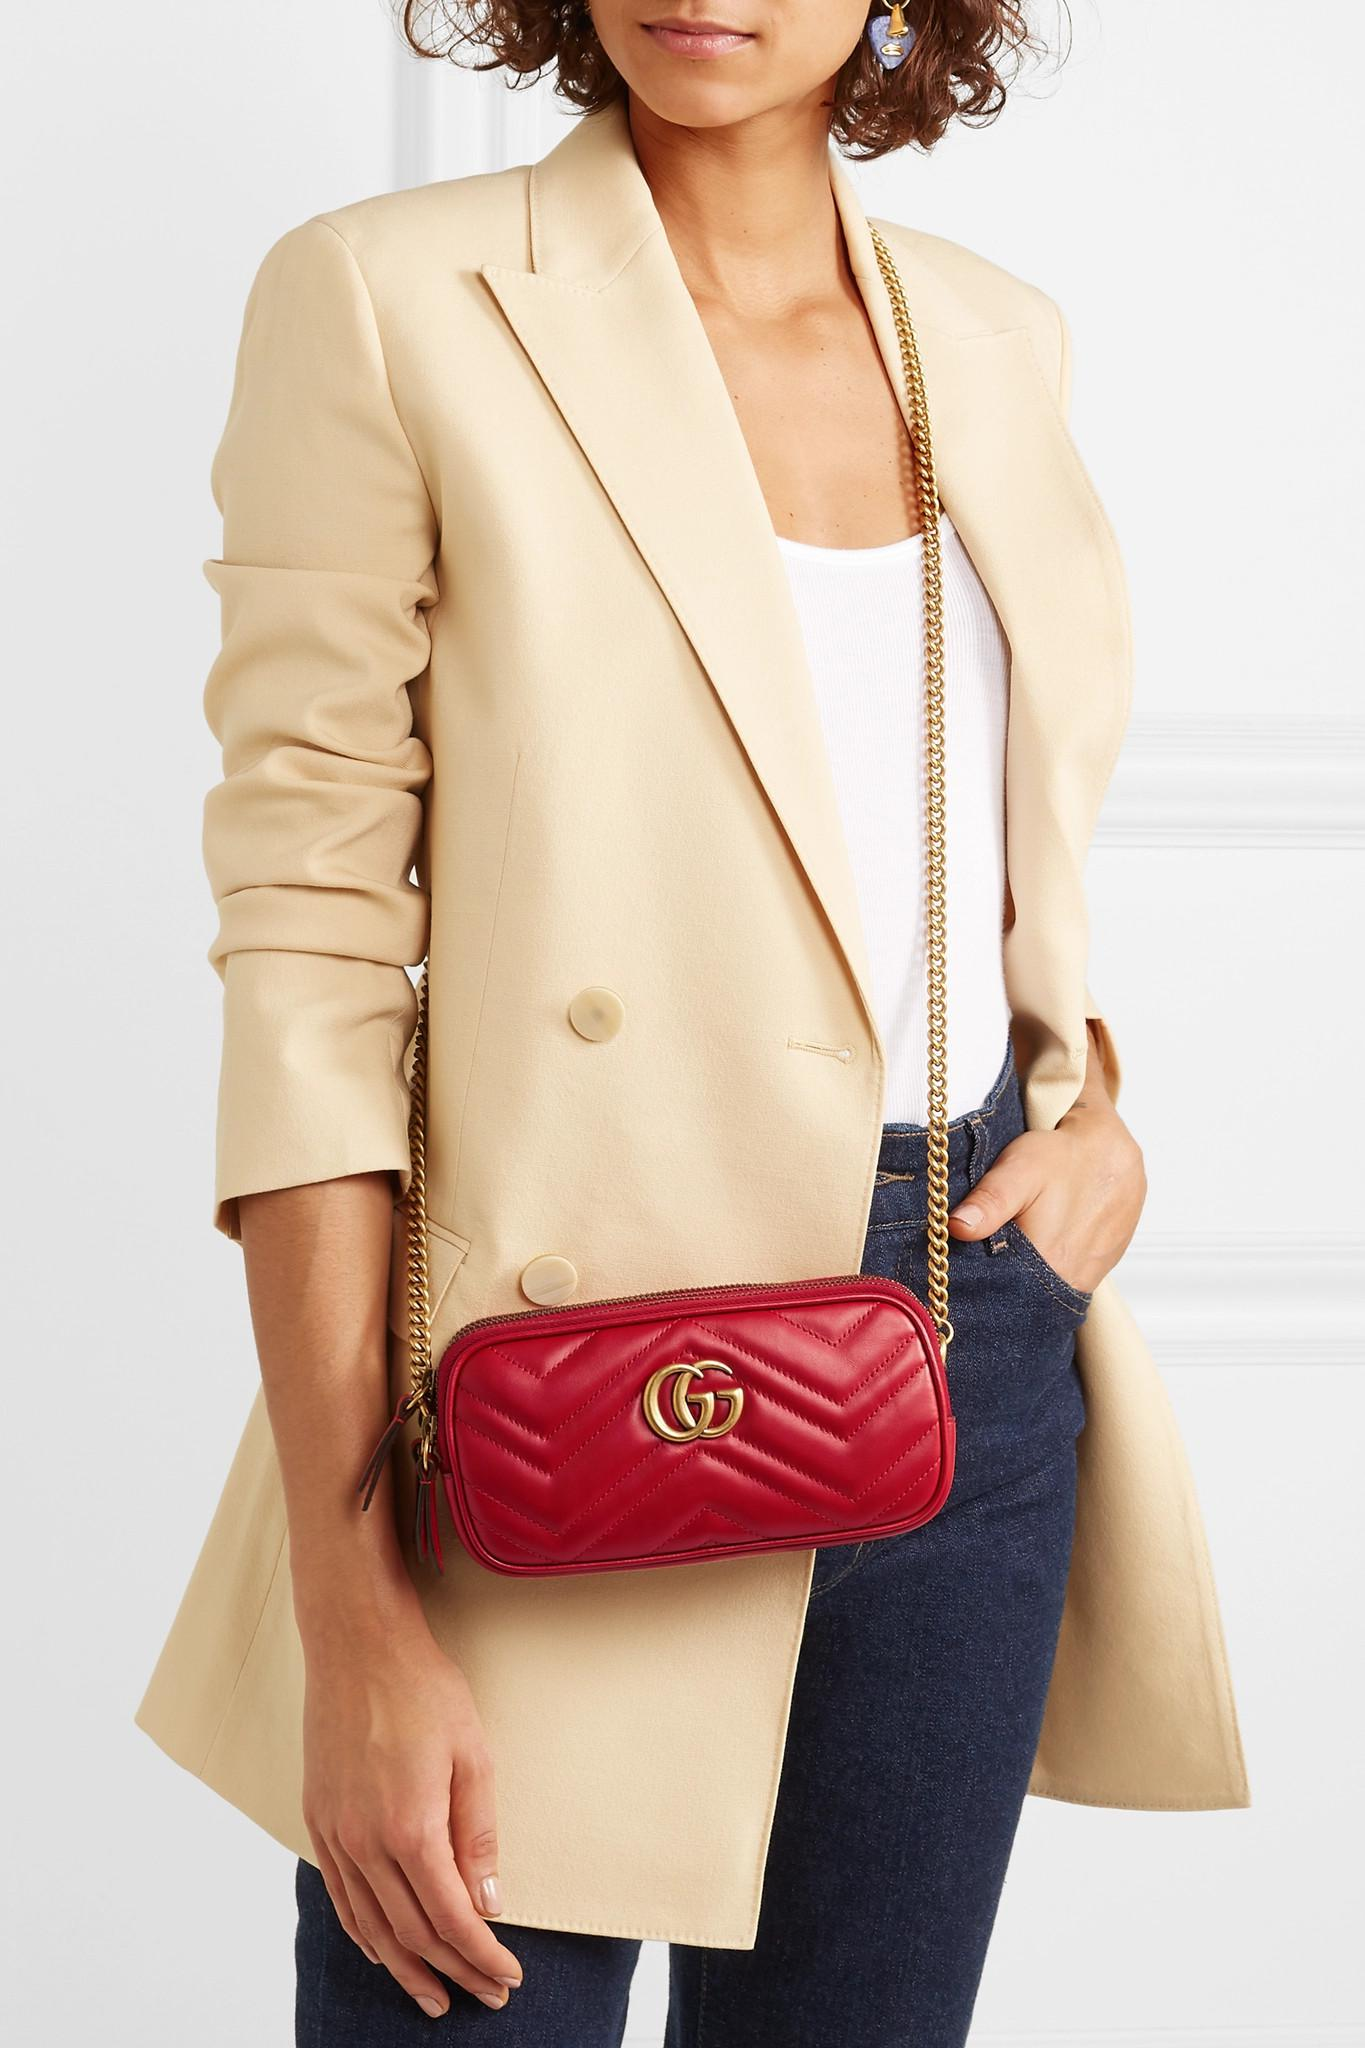 808cf490191 Gucci - Red Gg Marmont Mini Quilted Leather Shoulder Bag - Lyst. View  fullscreen